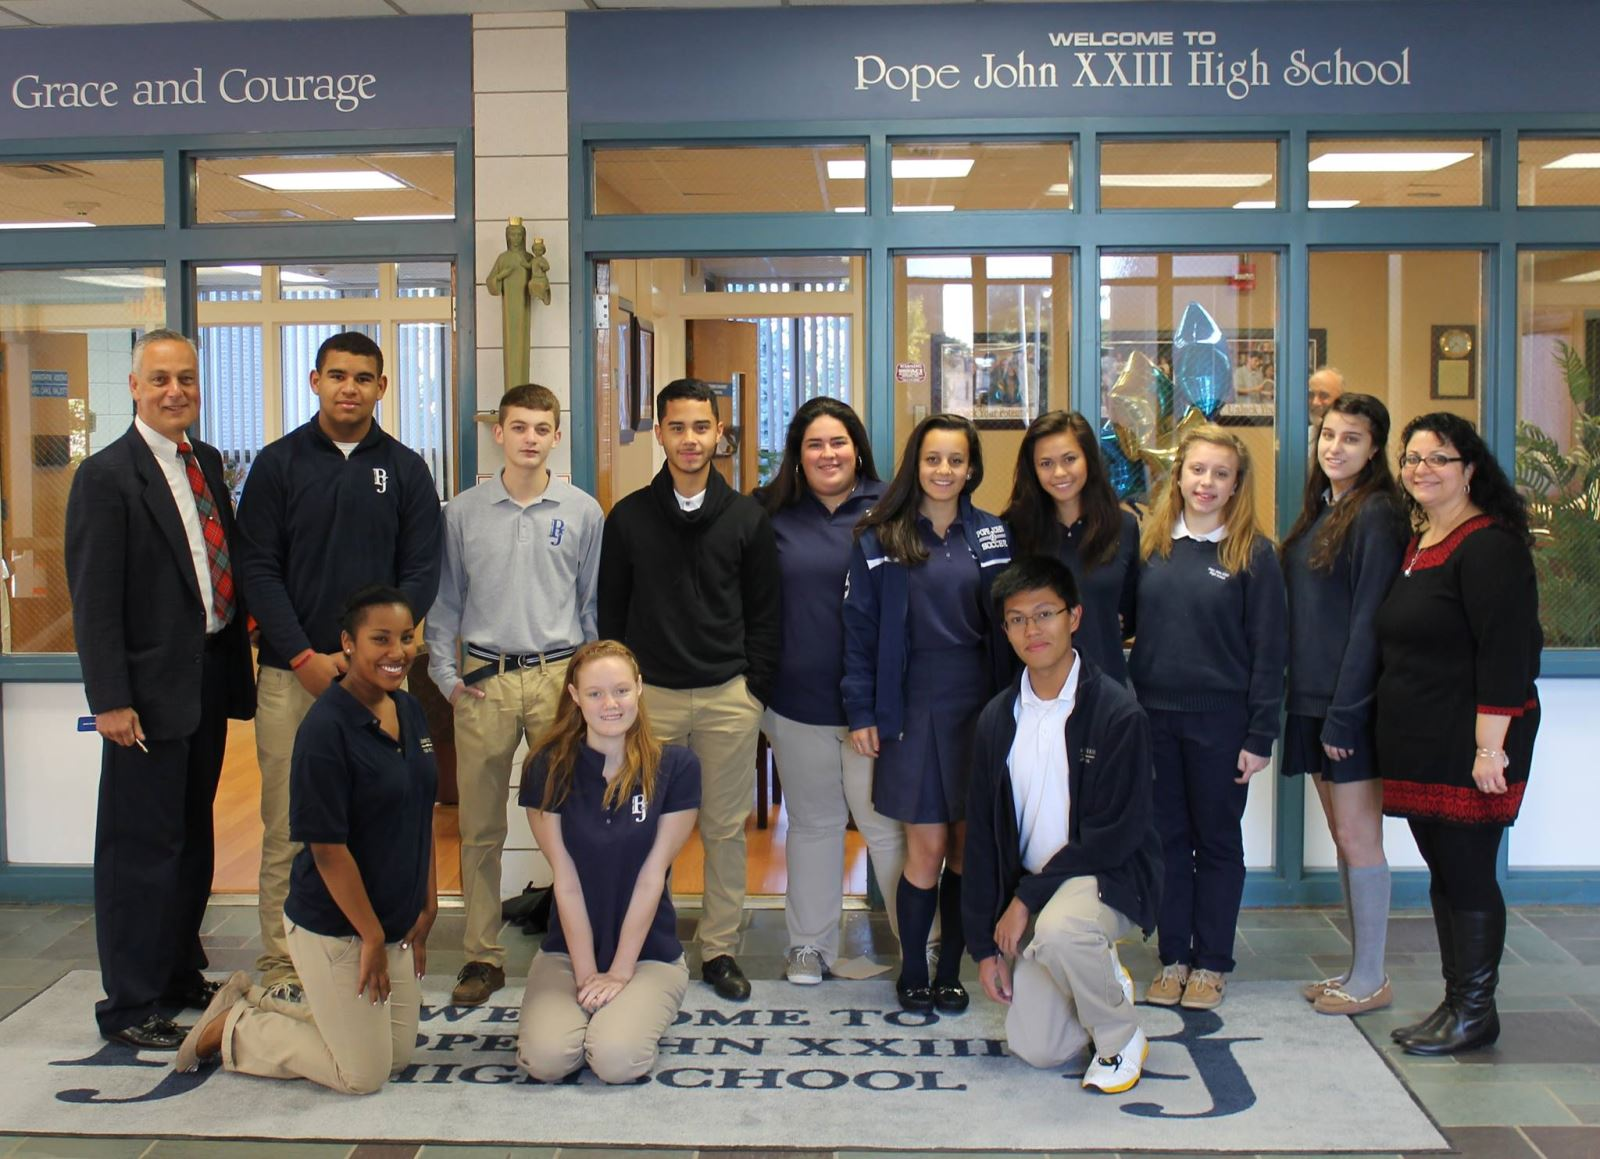 POPE JOHN XXIII HIGH SCHOOL